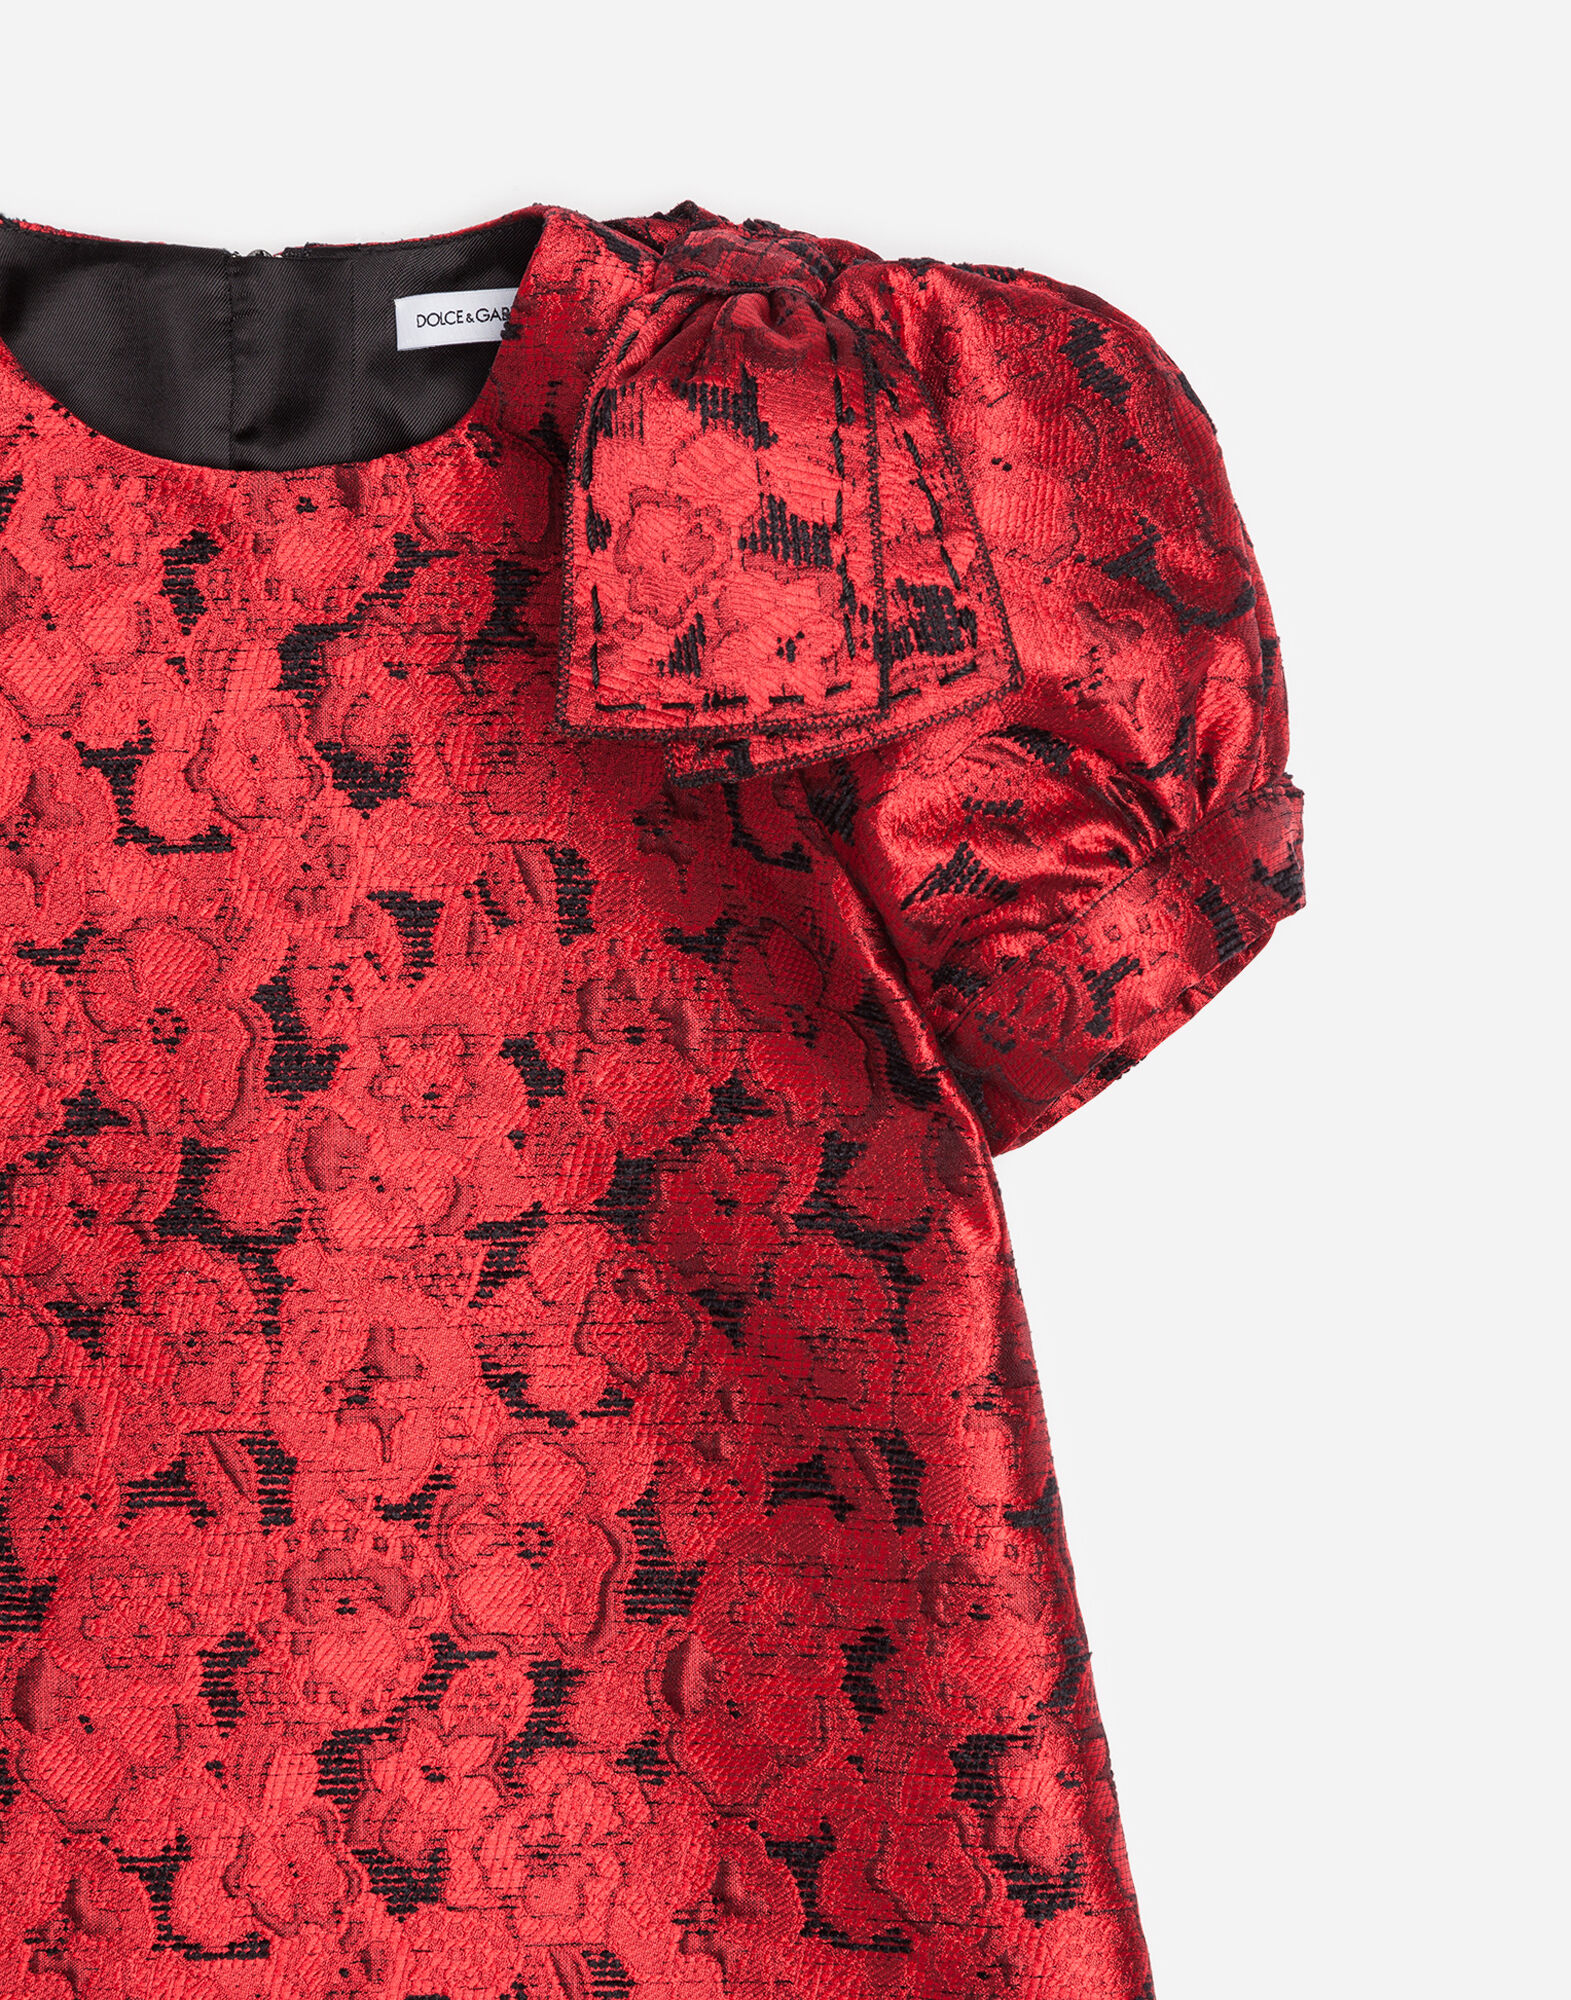 A-LINE DRESS IN FLORAL JACQUARD